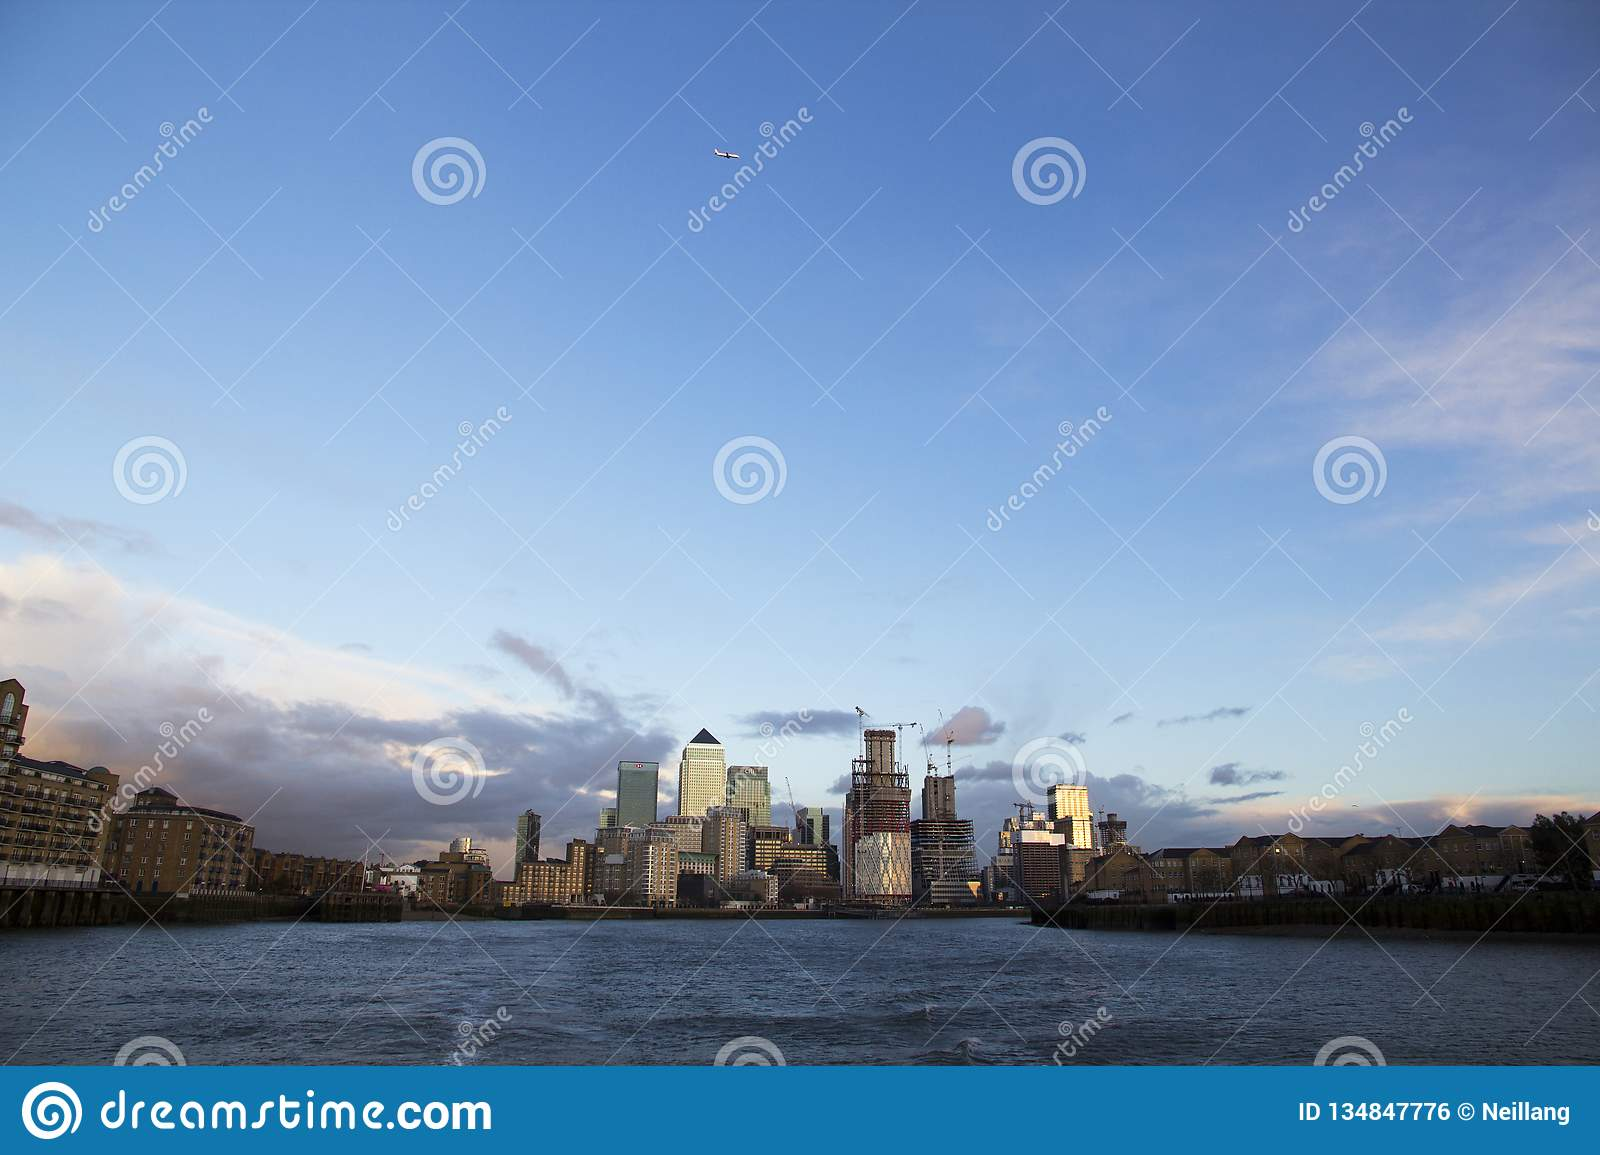 London cityscape across the River Thames with a view of Canary Wharf, London, England, UK, May 20, 2017